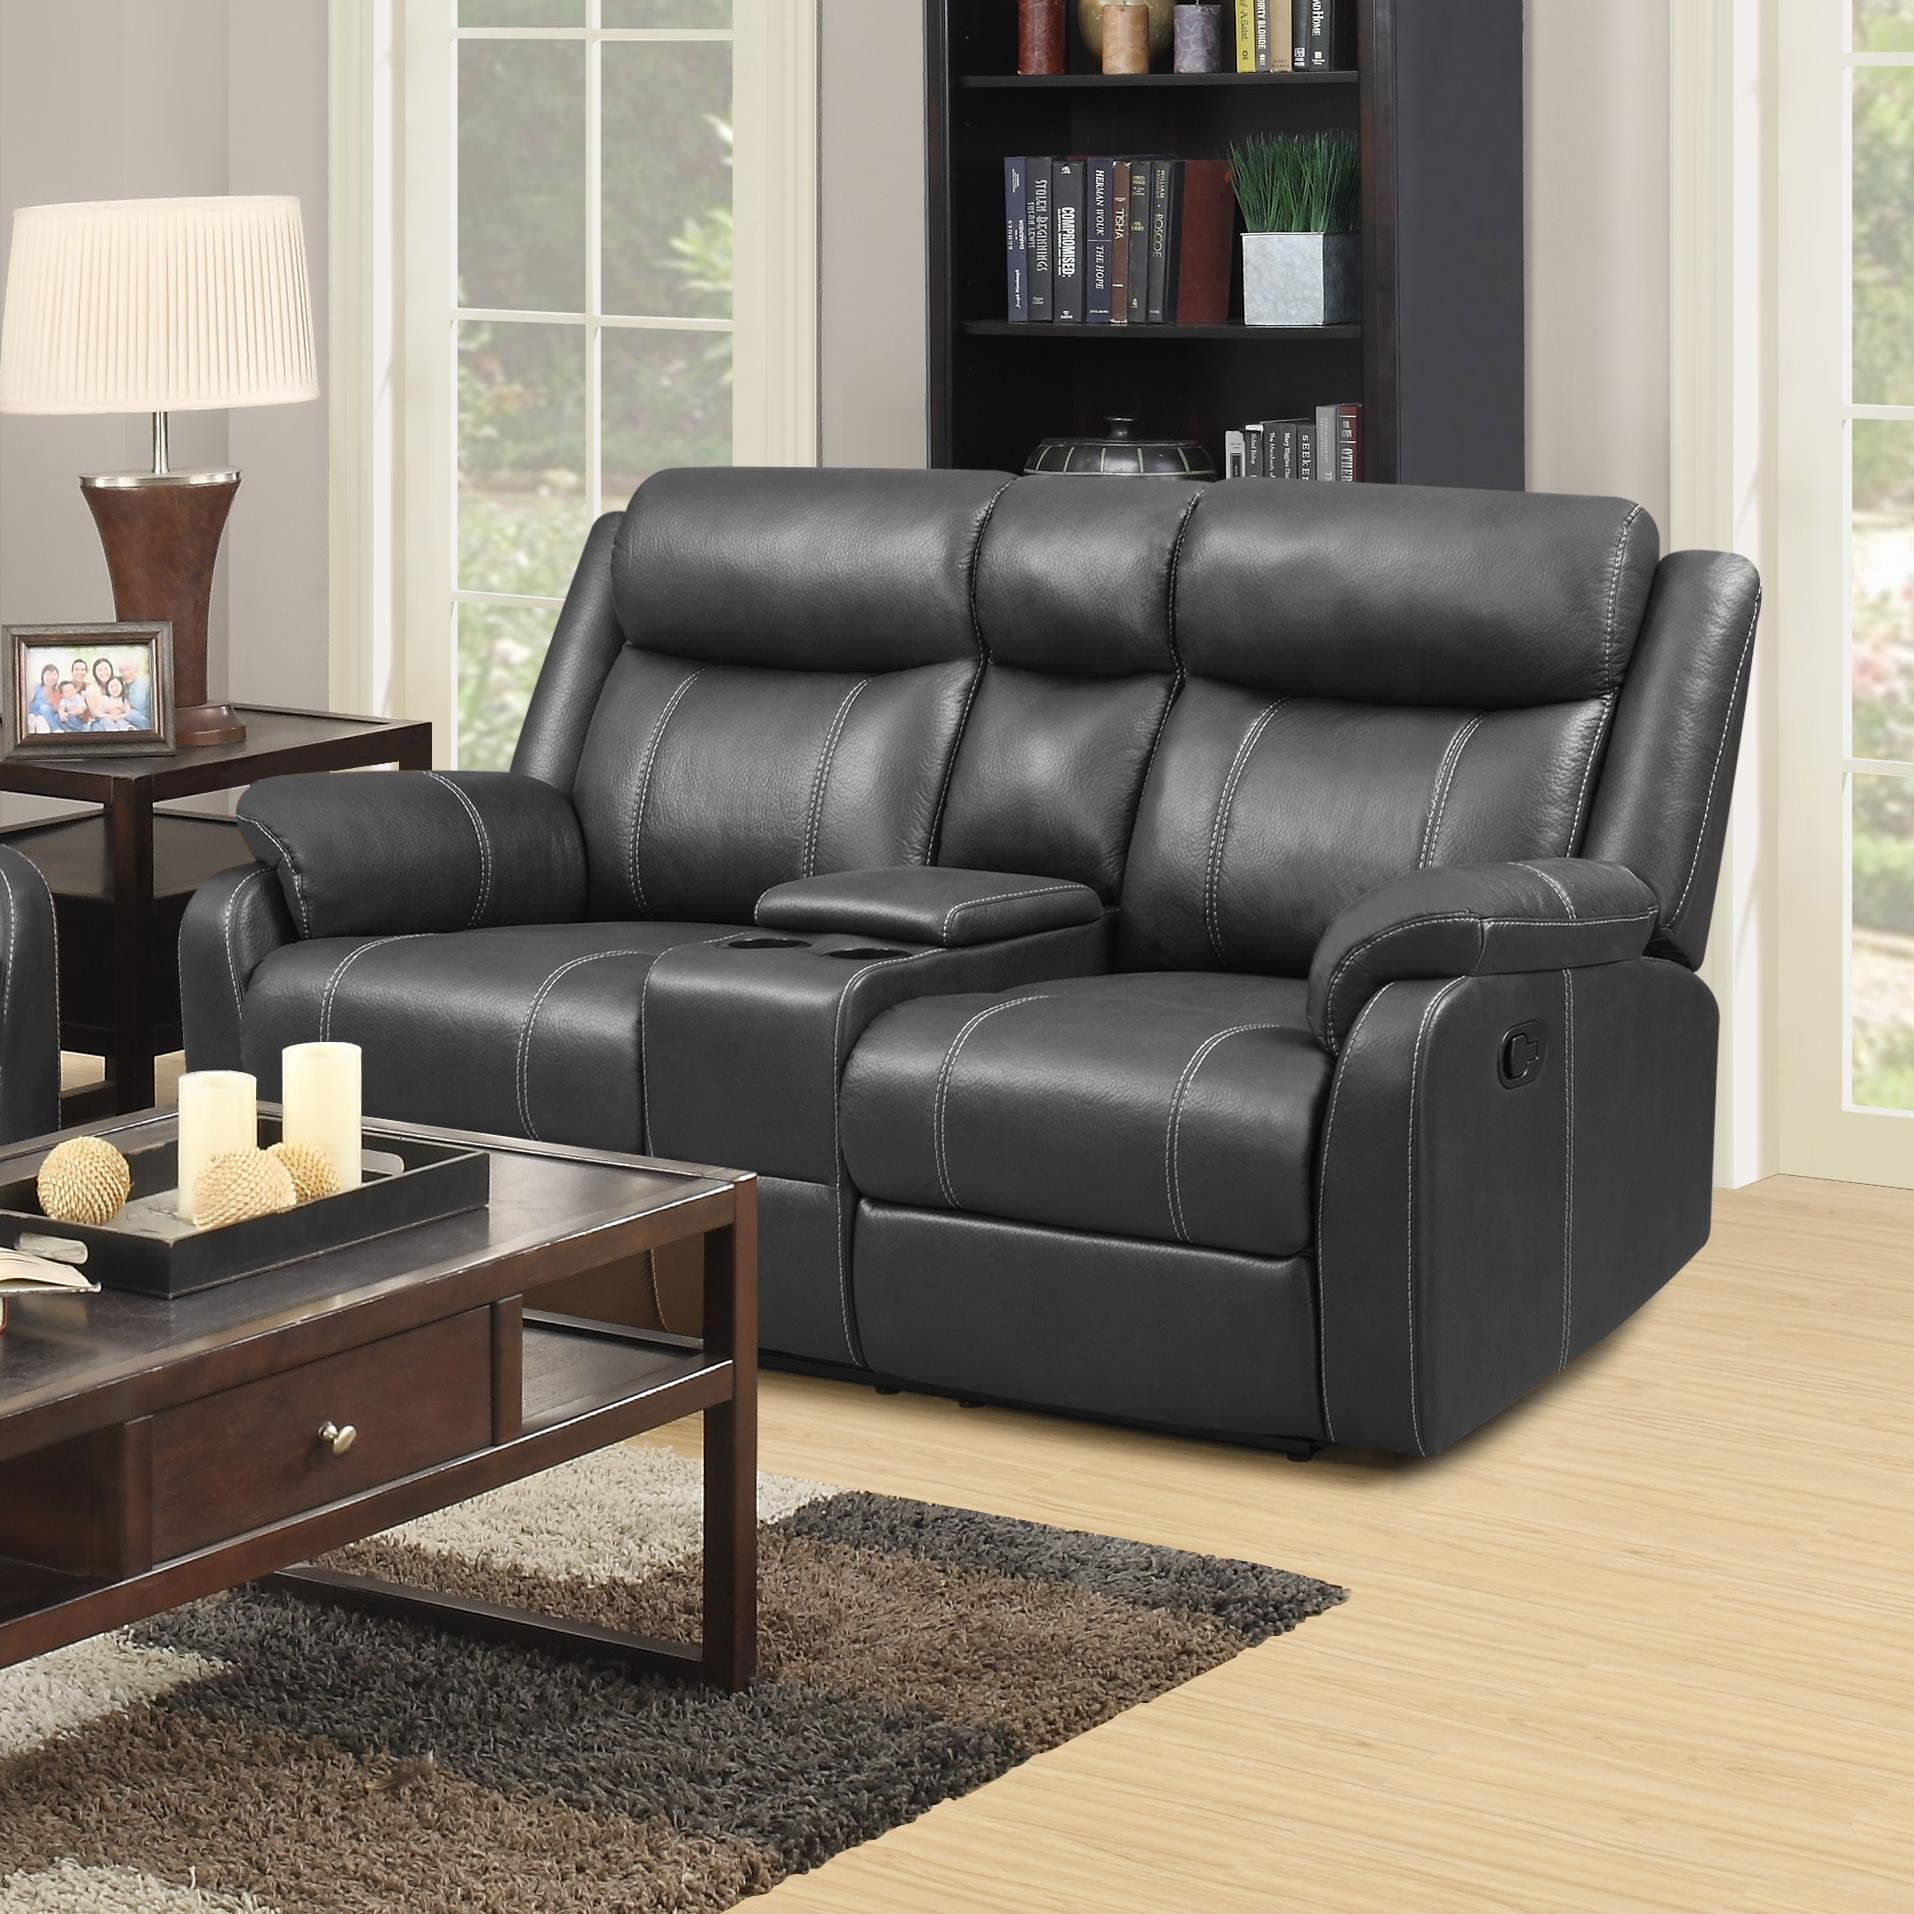 Klaussner International  Domino-US Console Reclining Loveseat - Item Number: DOMINO-US CRLS-ValorCarbon